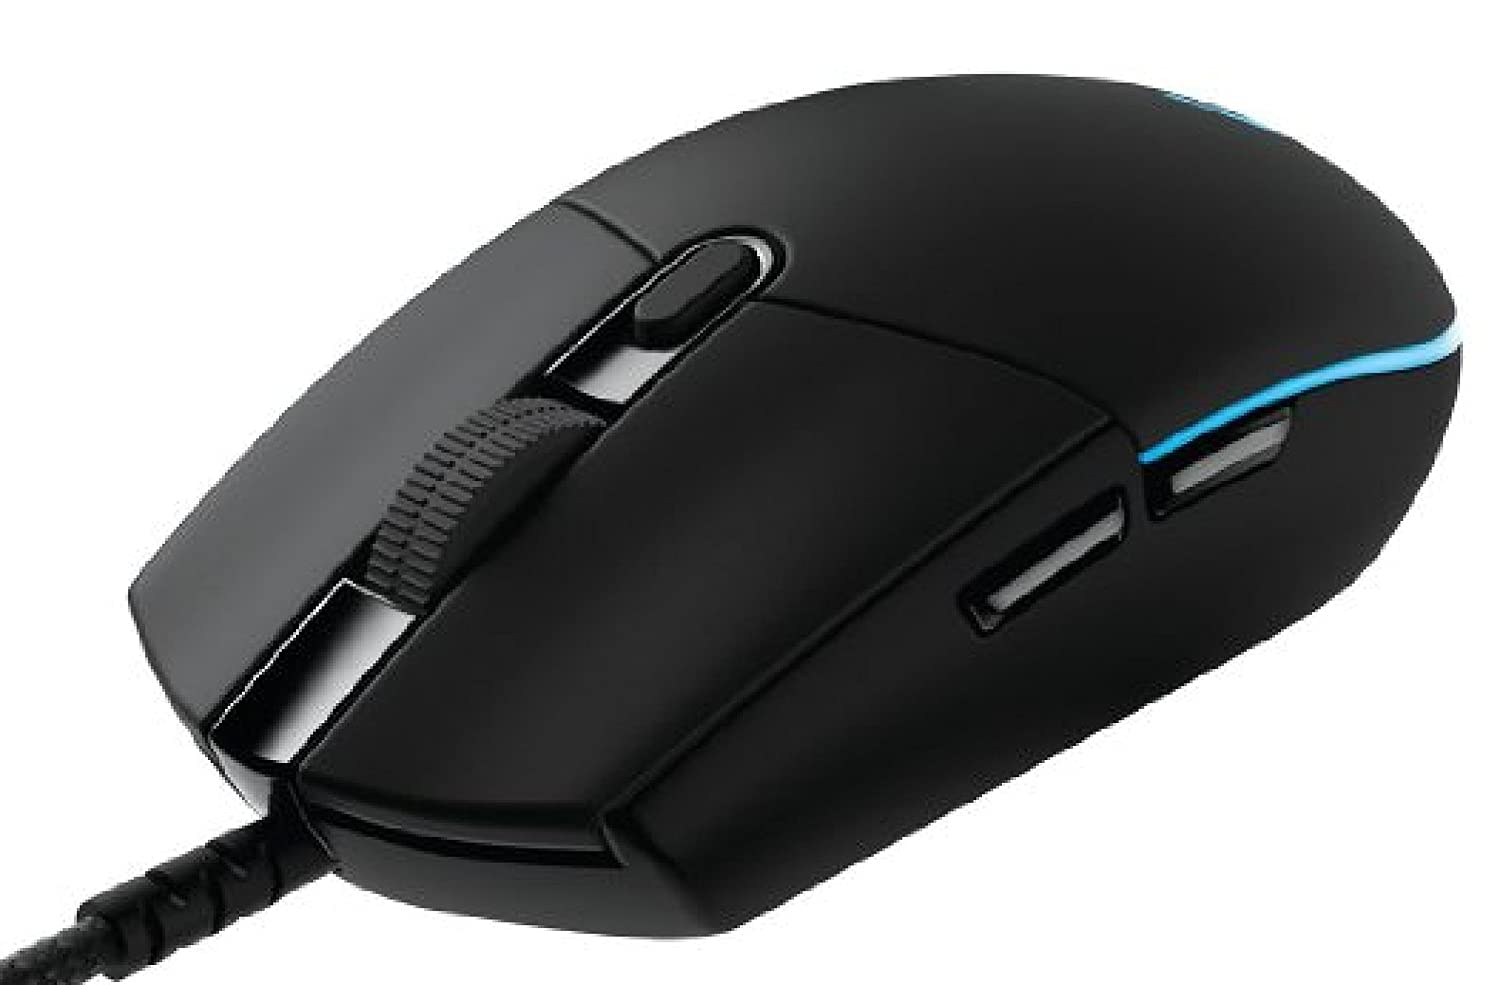 Logitech G Buttons Pro Optical 1ms, Sensor Gaming Mouse (12,000 DPI; [並行輸入品] 1000 Hz 1ms, RGB, 6 Programmable Buttons - Black [並行輸入品] B01N9KD0XG, ブランド古着のフールズジャッジ:7a69a3b3 --- awardsame.club